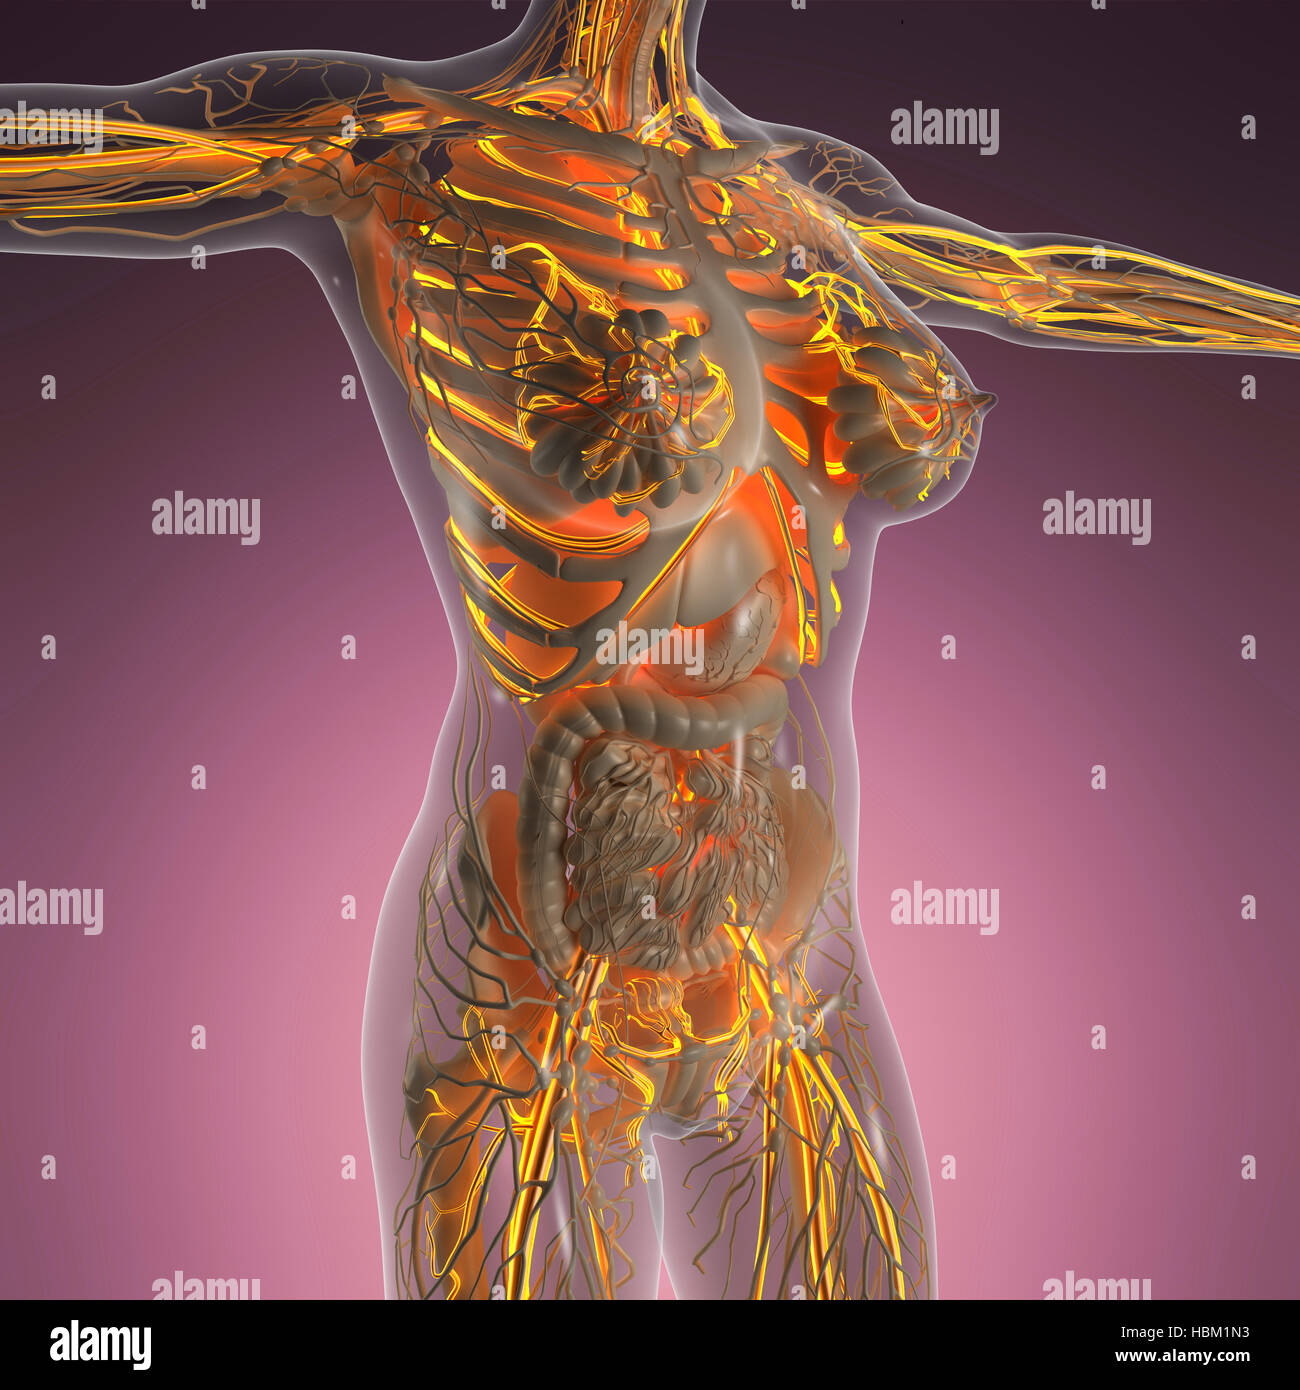 Blood Vessels Of The Body Stock Photos Blood Vessels Of The Body